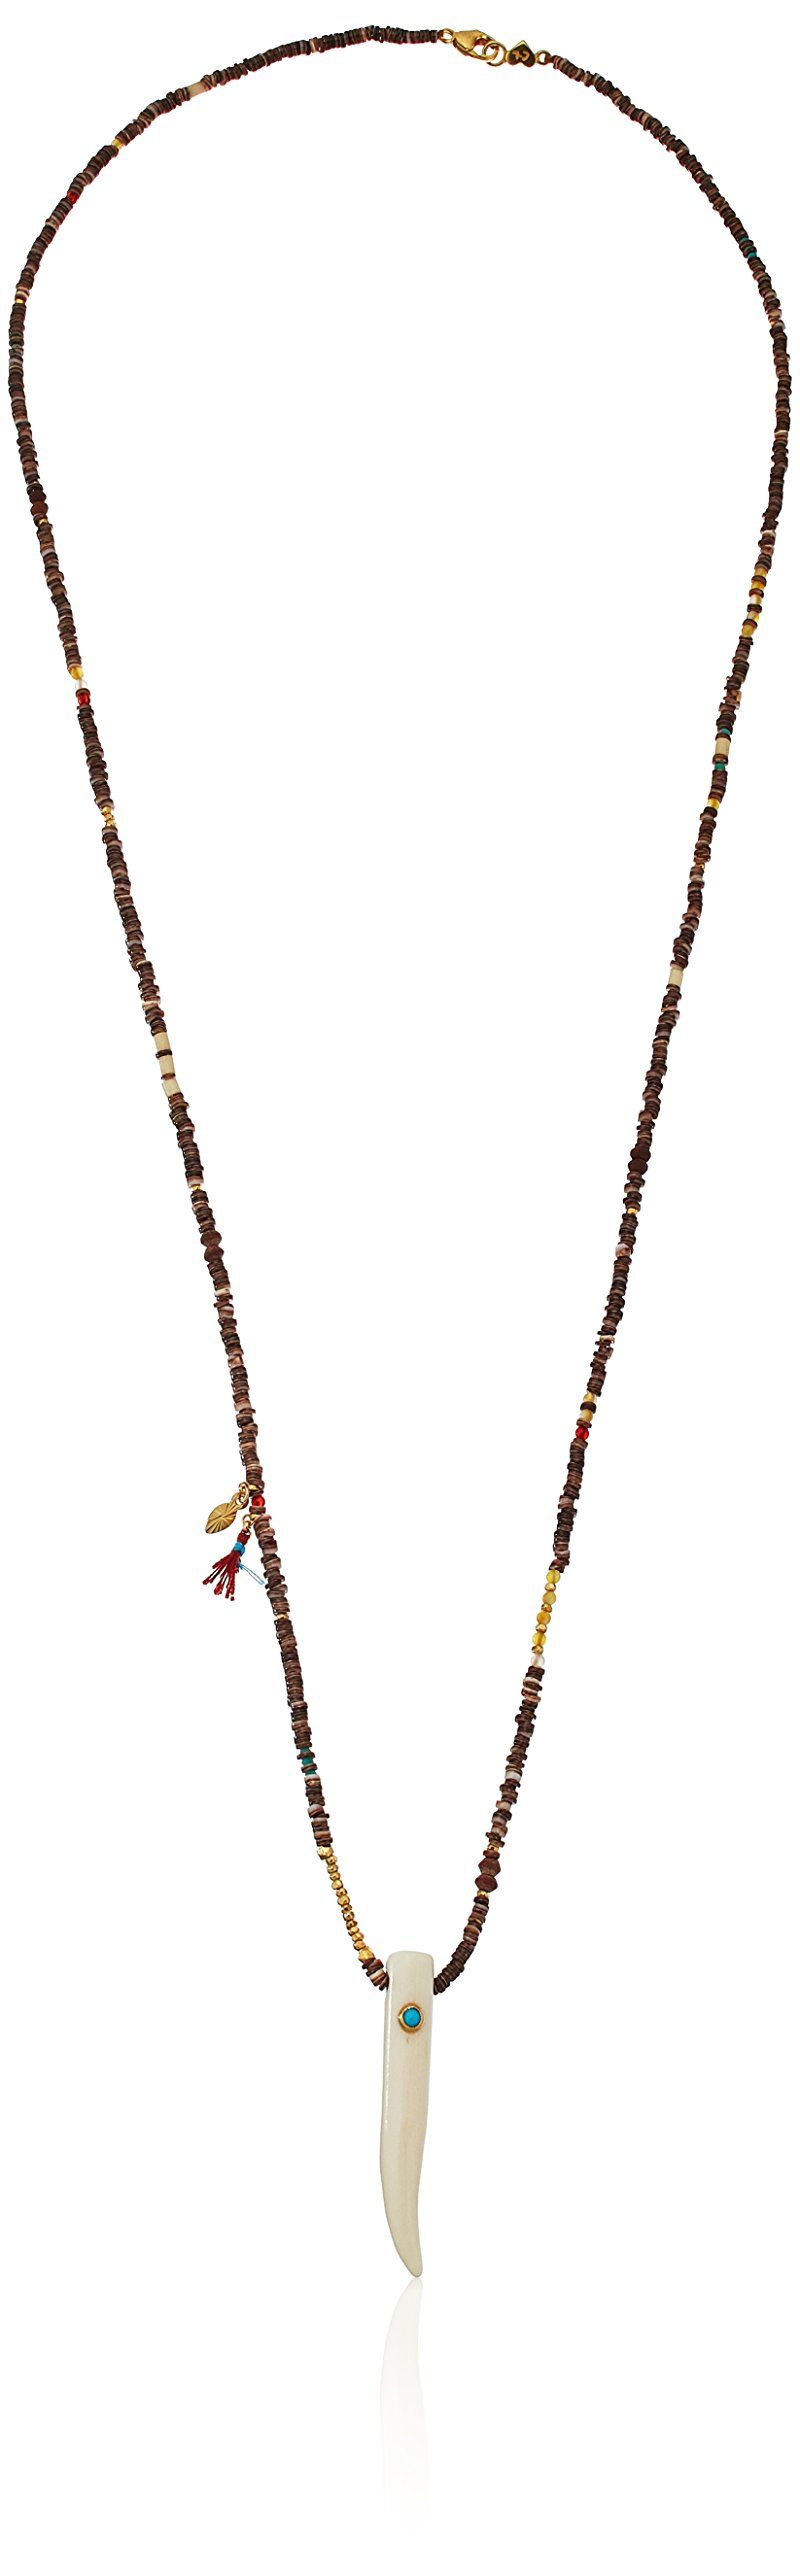 Chan Luu Turquoise Bone Necklace. Items that are handmade and use natural stones, may vary in size, shape and color. Made in Viet Nam. 18k Gold Plated Sterling Silver. Imported.